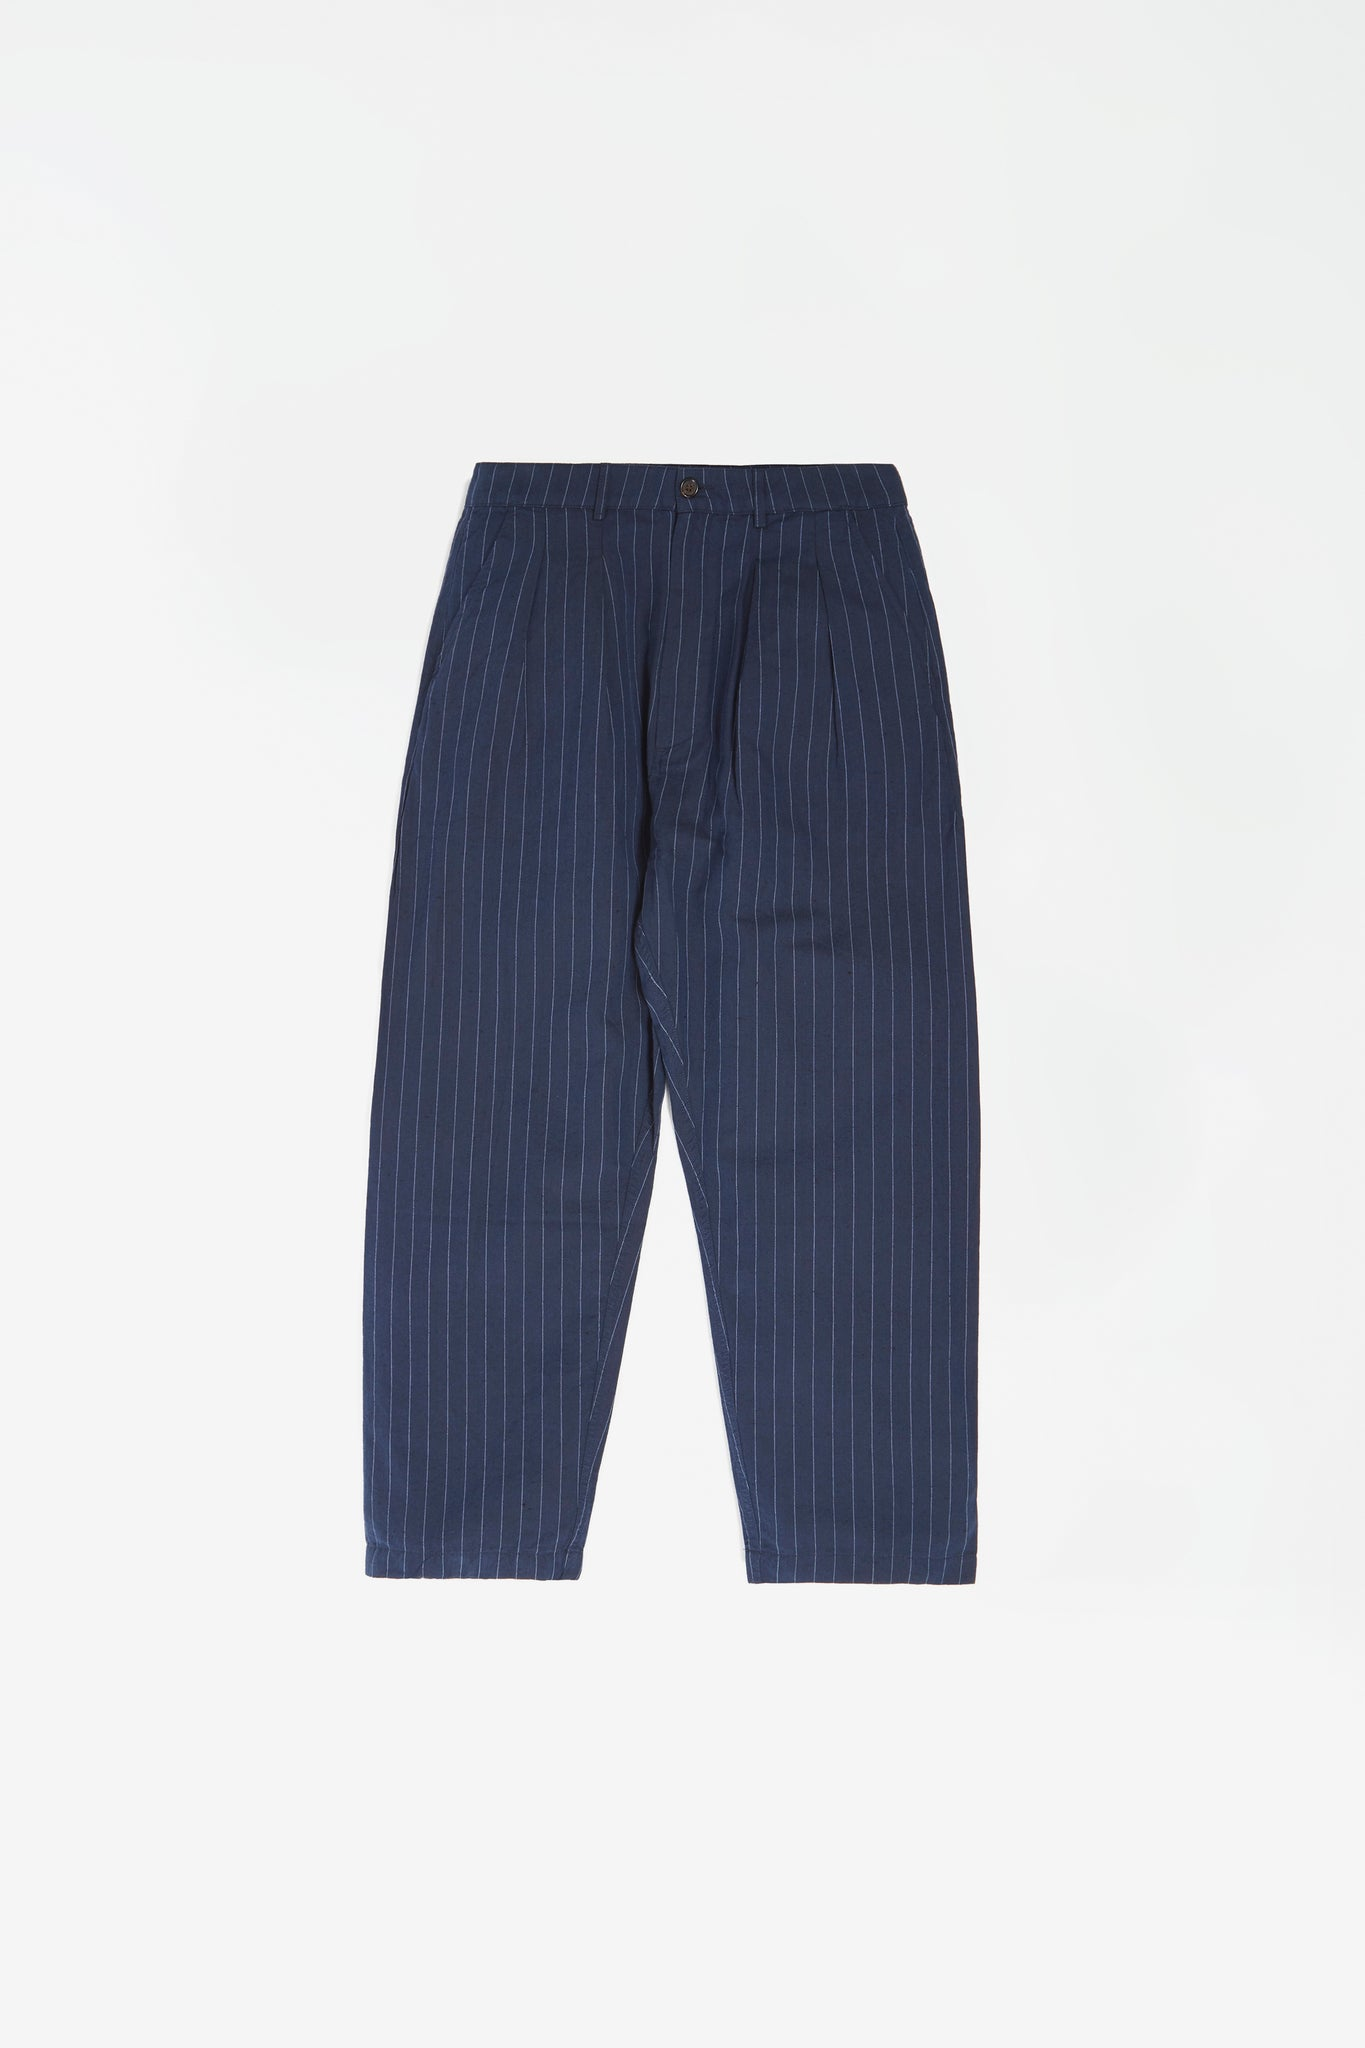 Double pleat pant linen stripe navy